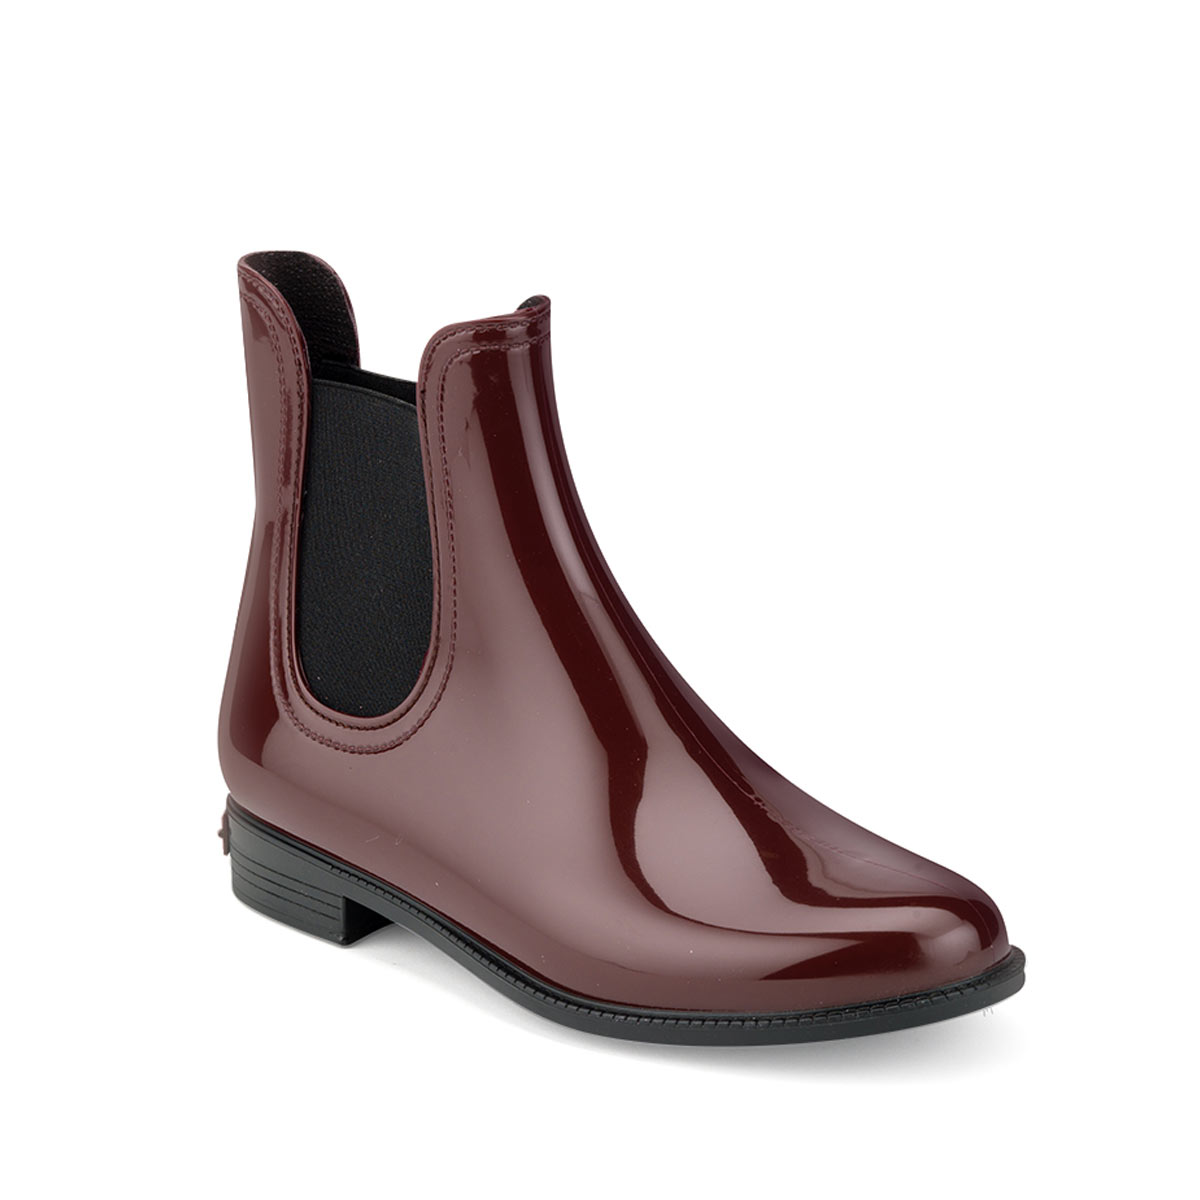 chelsea boot in bordeaux pvc with synthetic sheared faux. Black Bedroom Furniture Sets. Home Design Ideas